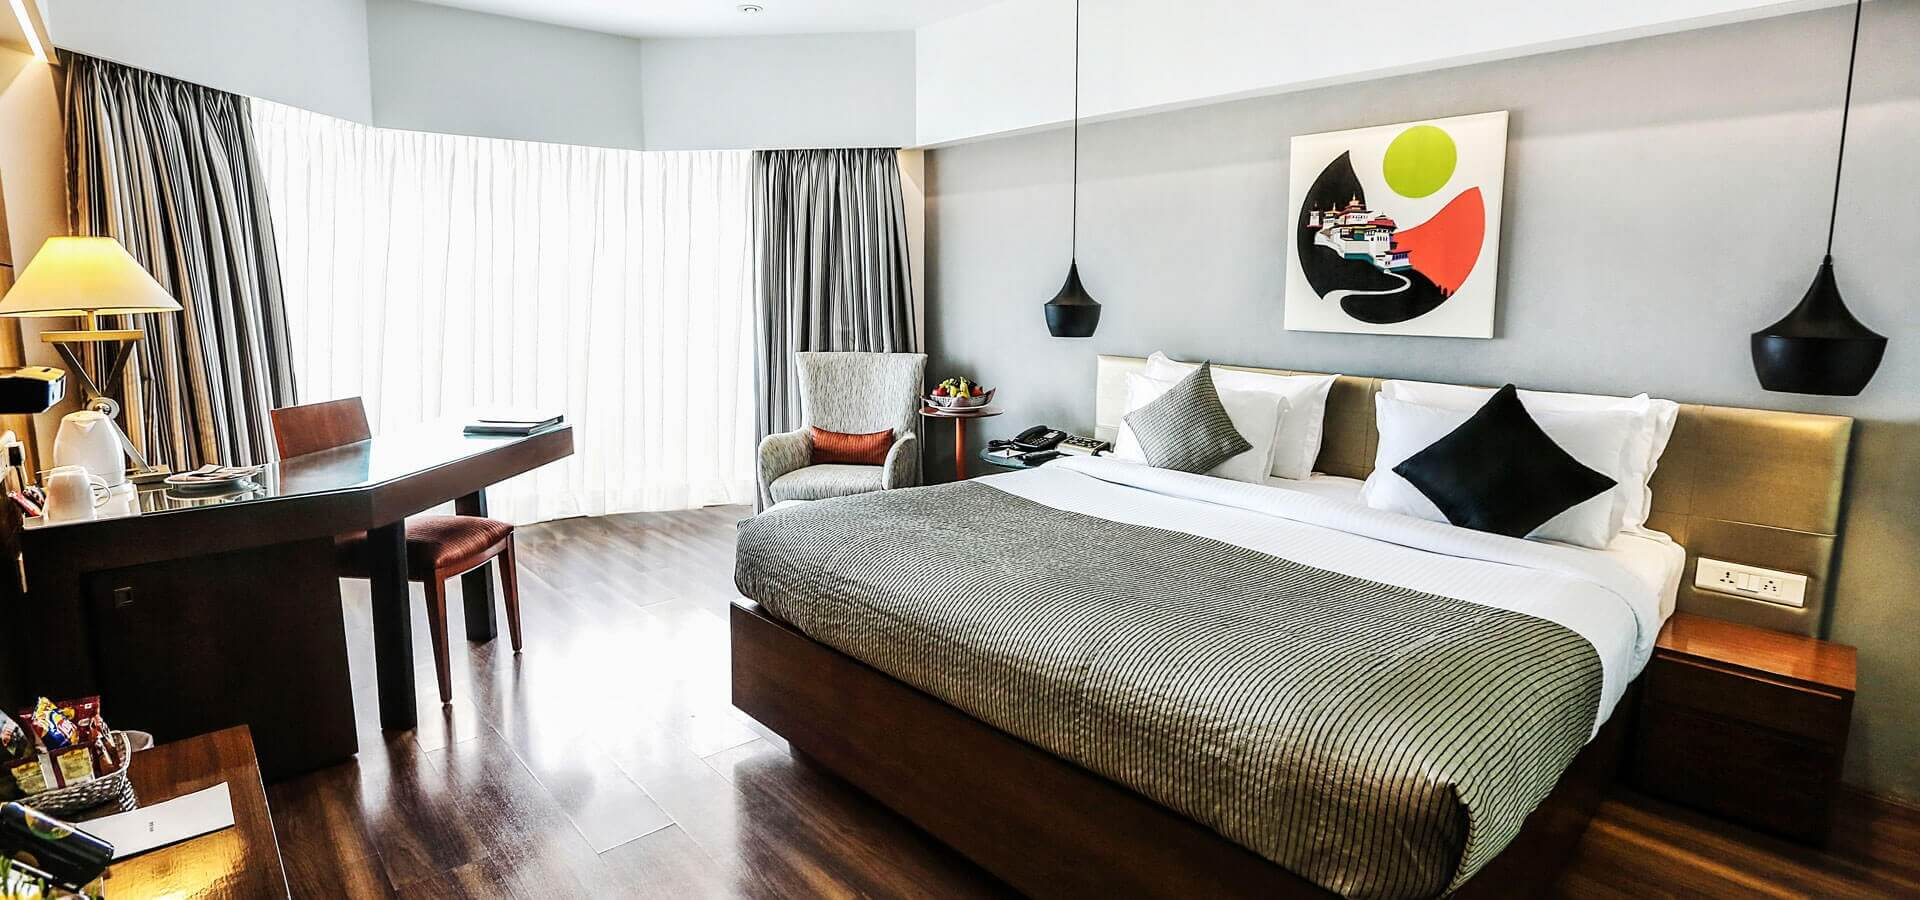 luxury hotels in Juhu, hotels with luxury rooms in Juhu, Hotel rooms in Juhu